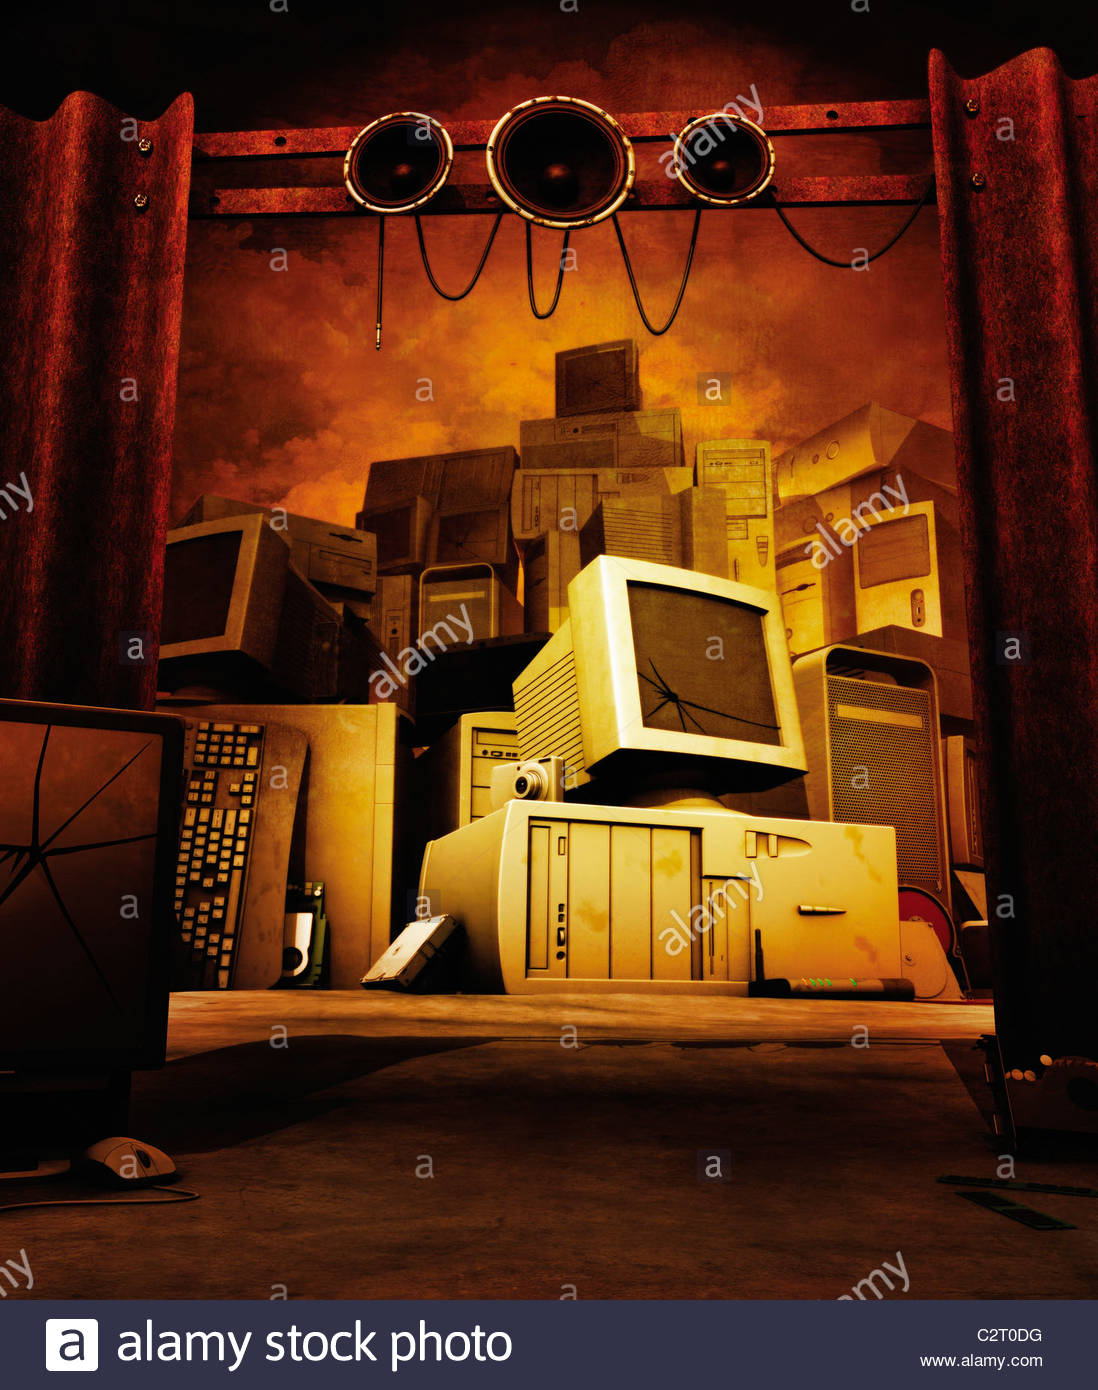 Obsolete computer equipment in pile - Stock Image